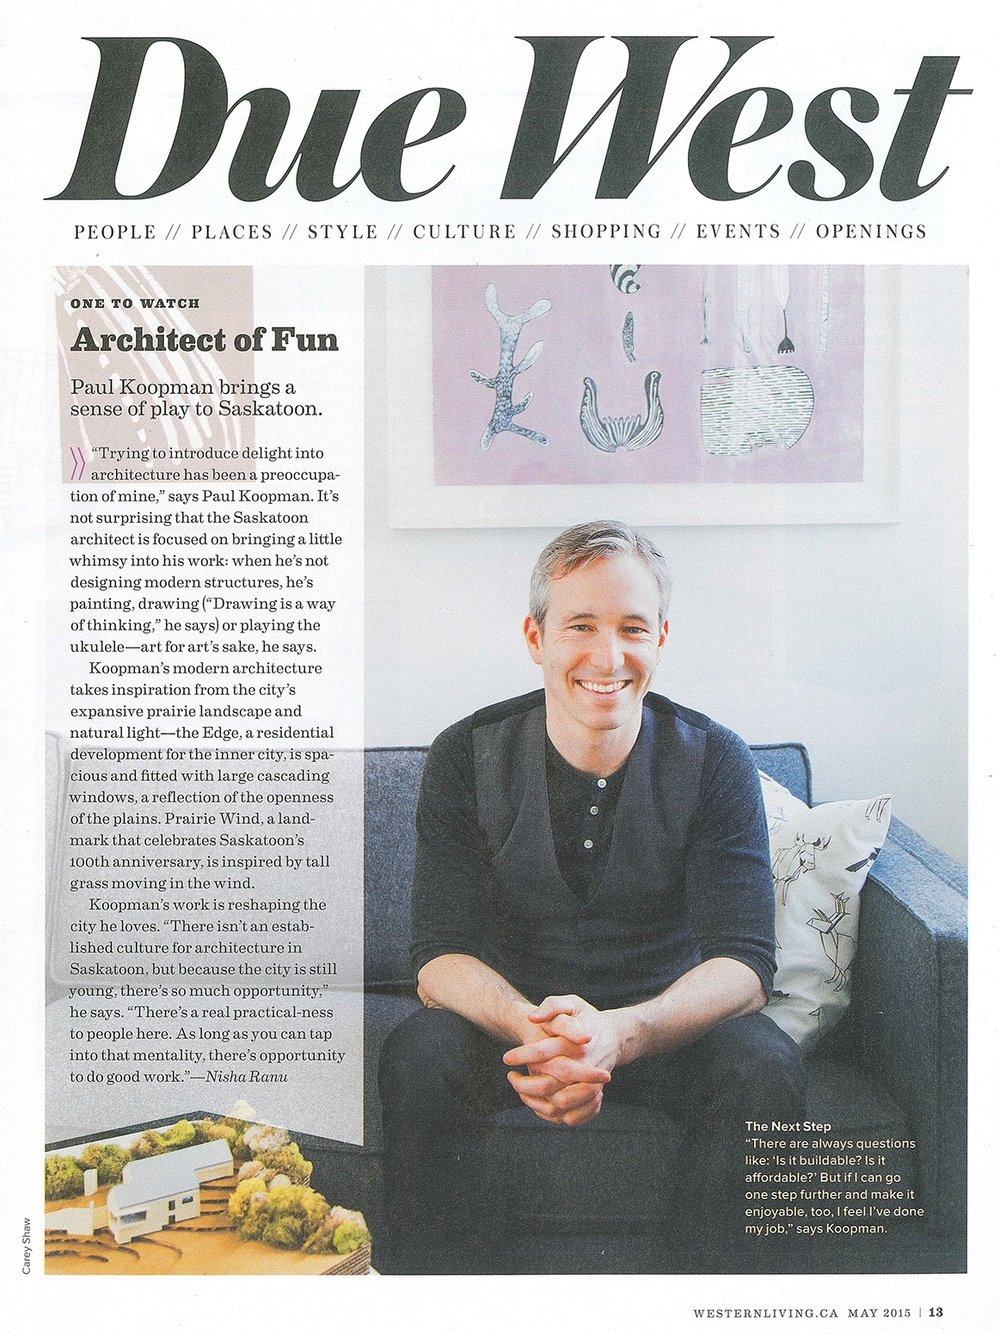 Ranu, N. (2015). Architect of fun.  Western living, 41  (4), 13.   Link to article